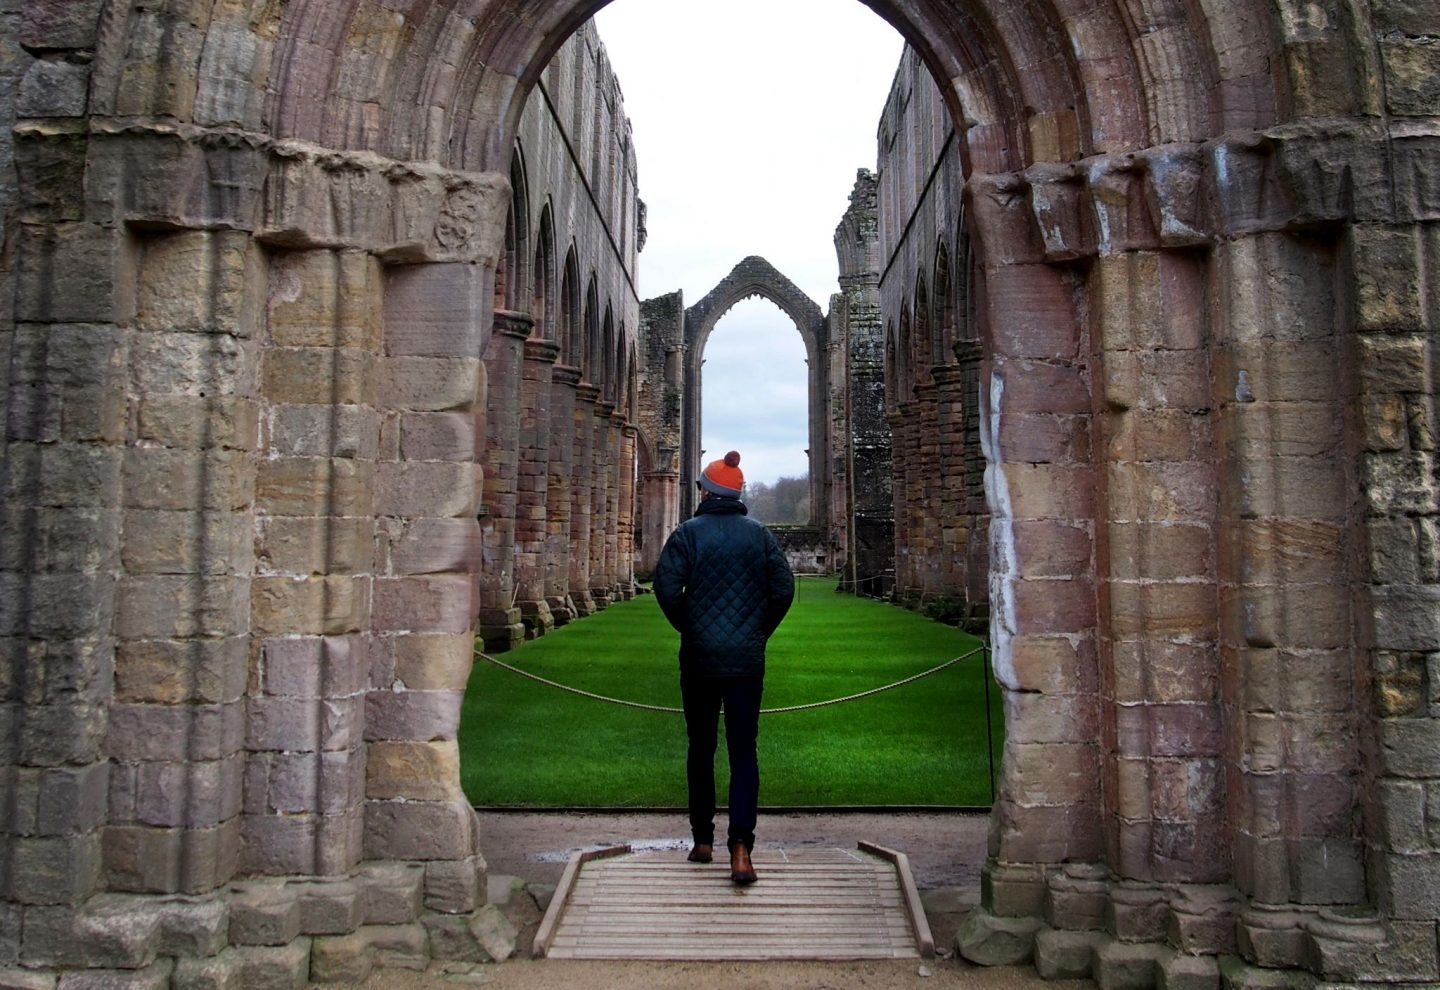 Explore More #8 | Fountains Abbey